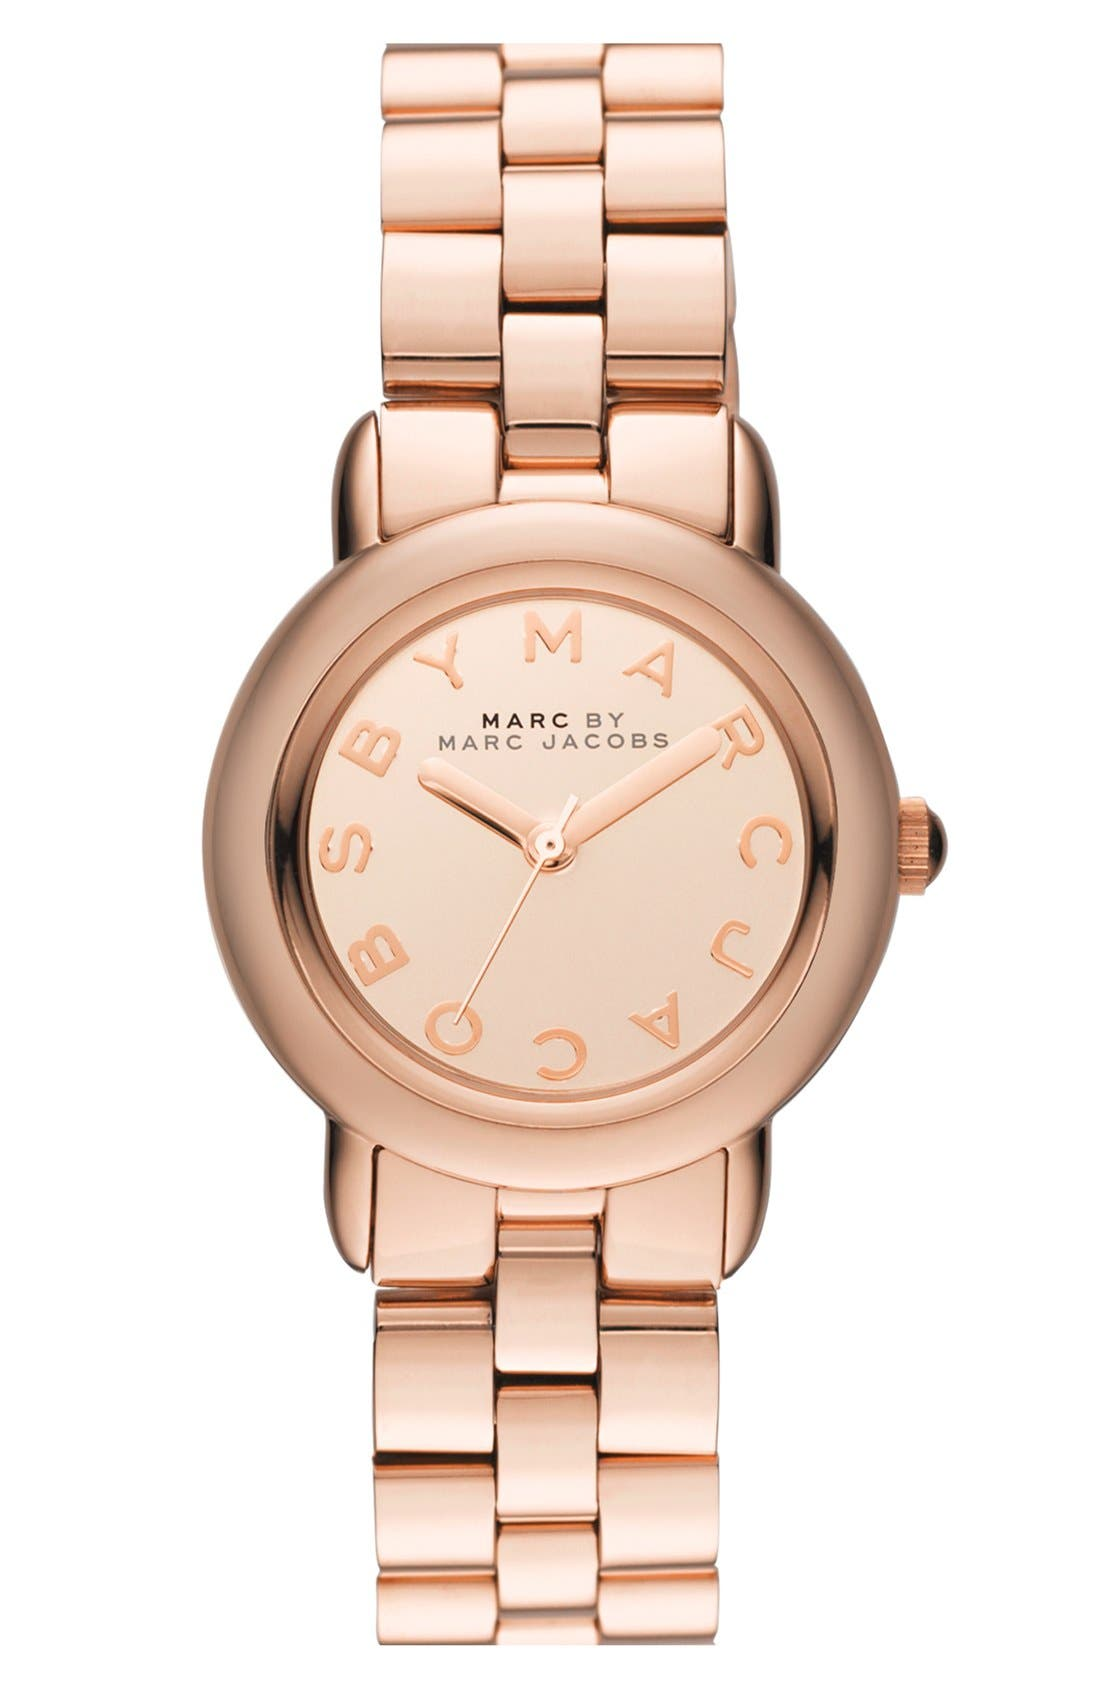 Main Image - MARC BY MARC JACOBS 'Marci' Small Bracelet Watch, 30mm